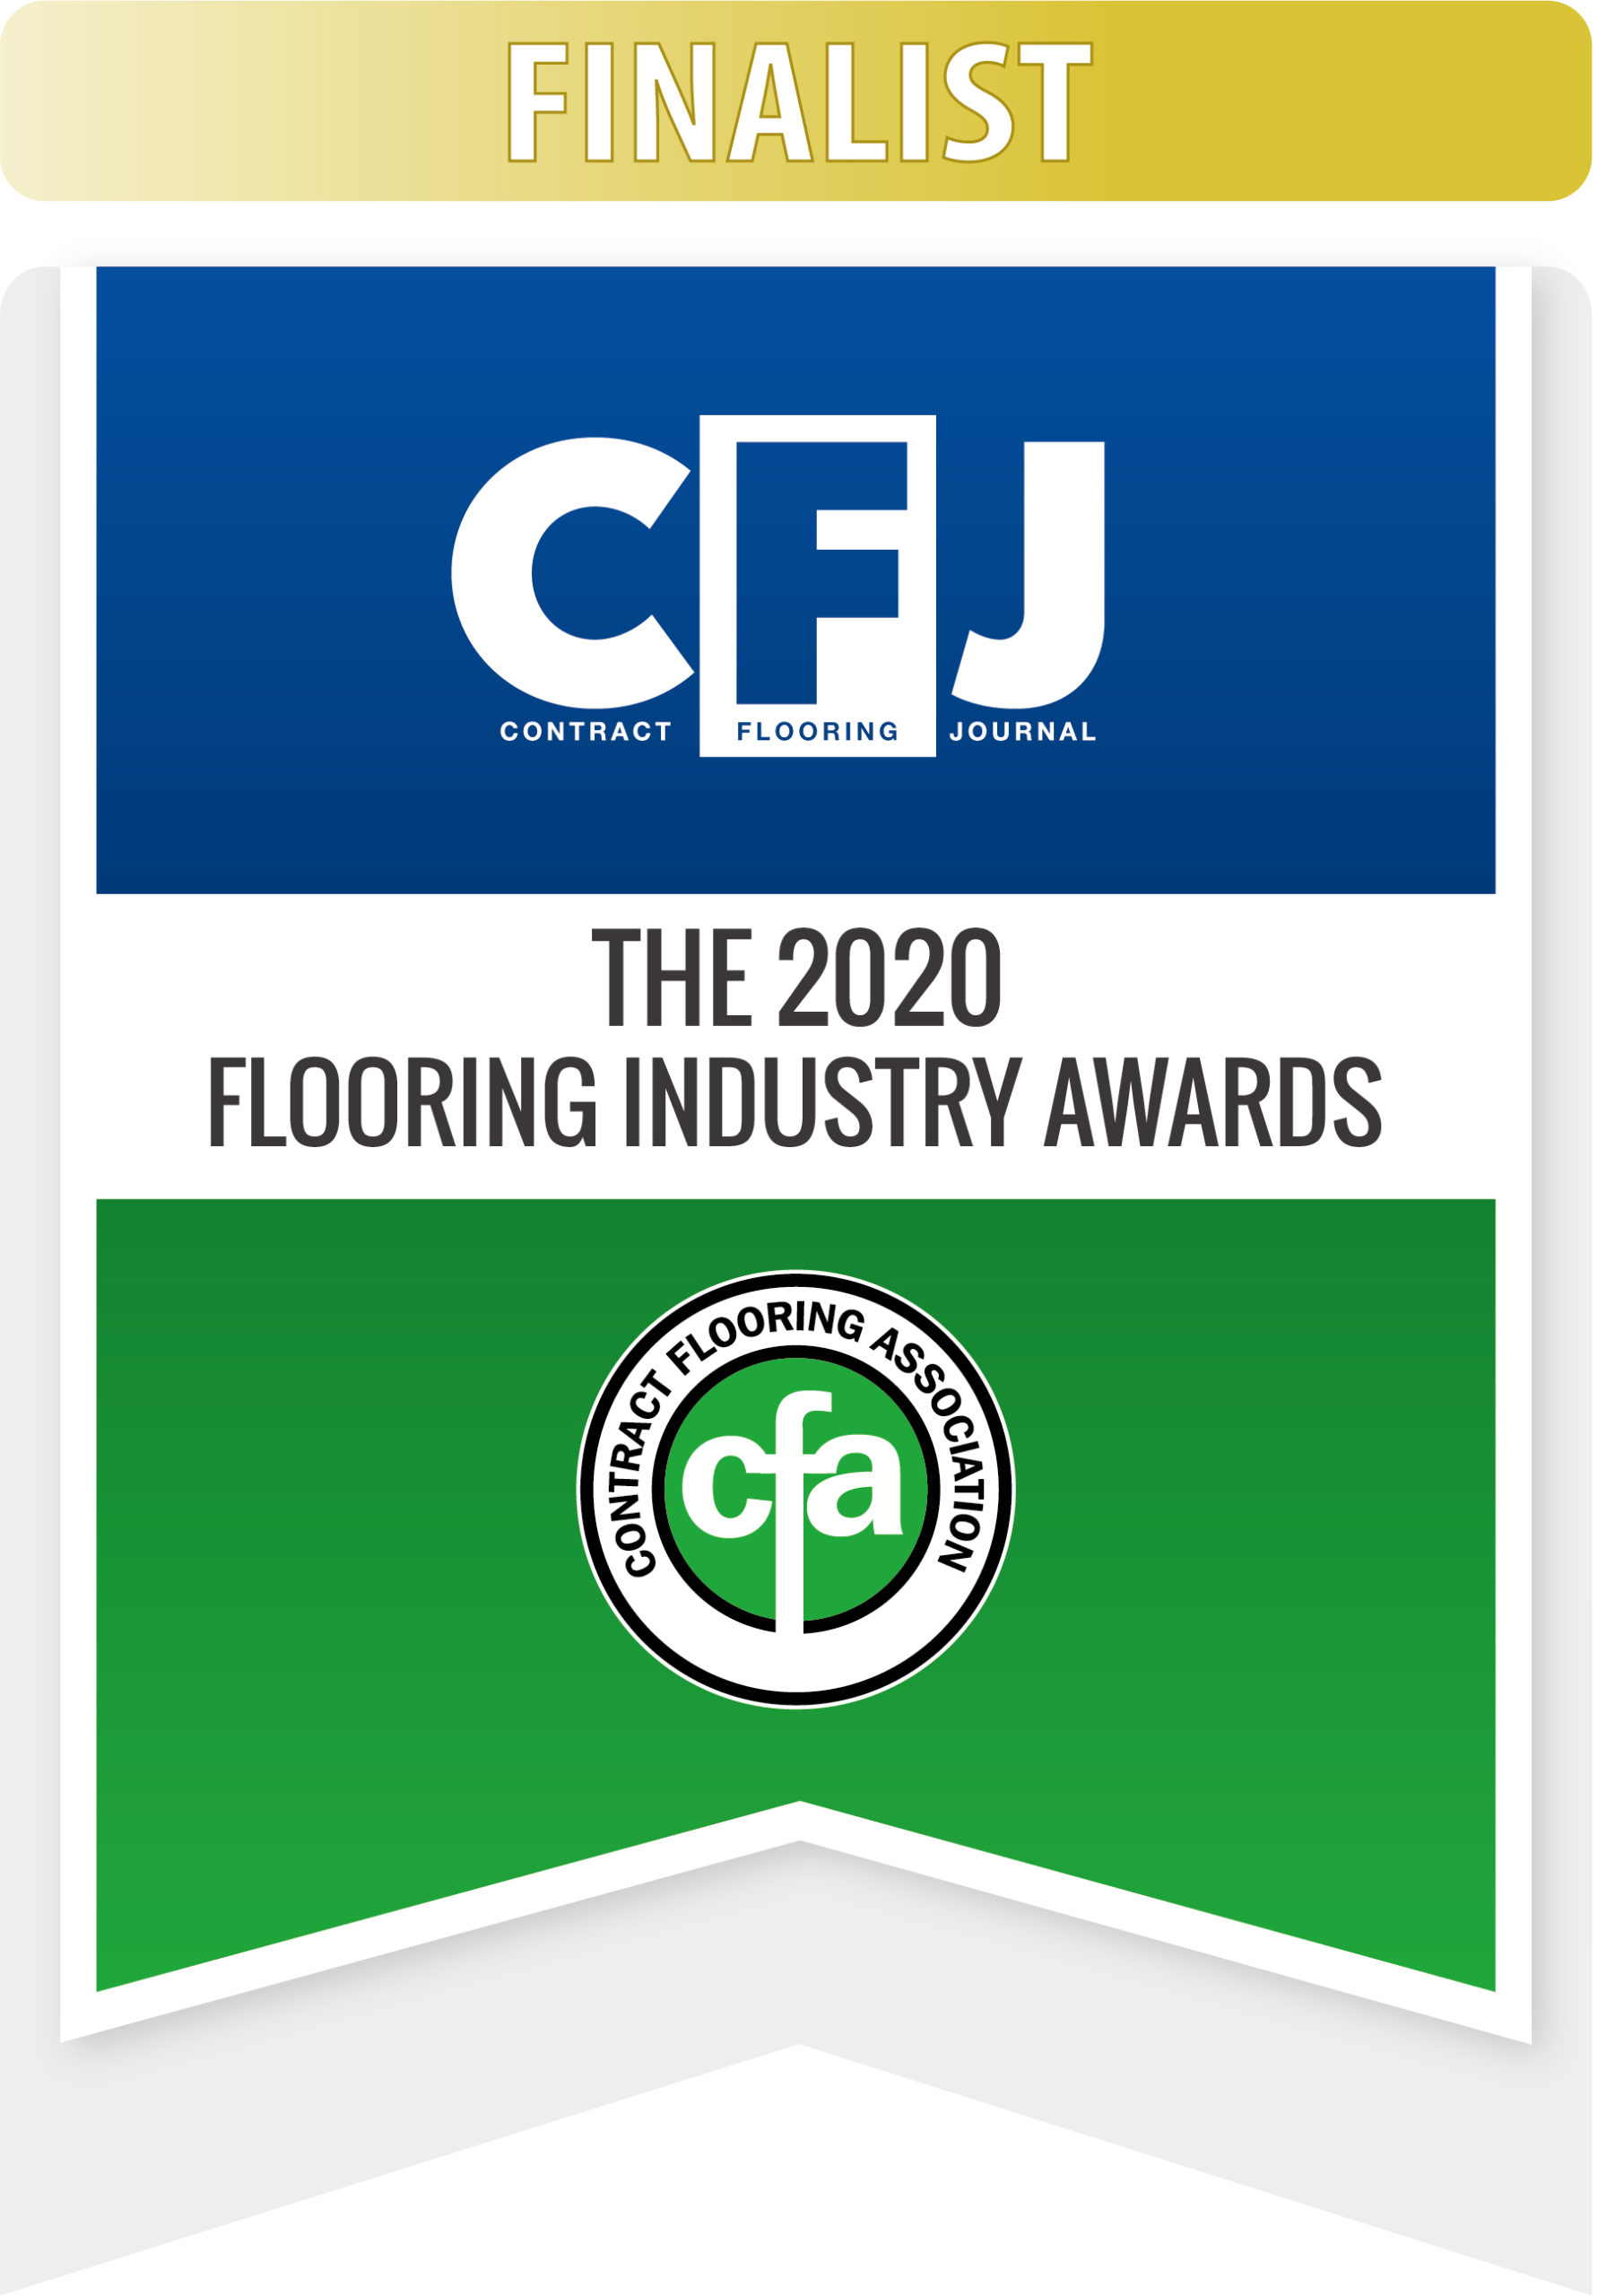 CFJ awards 2020 finalist logo